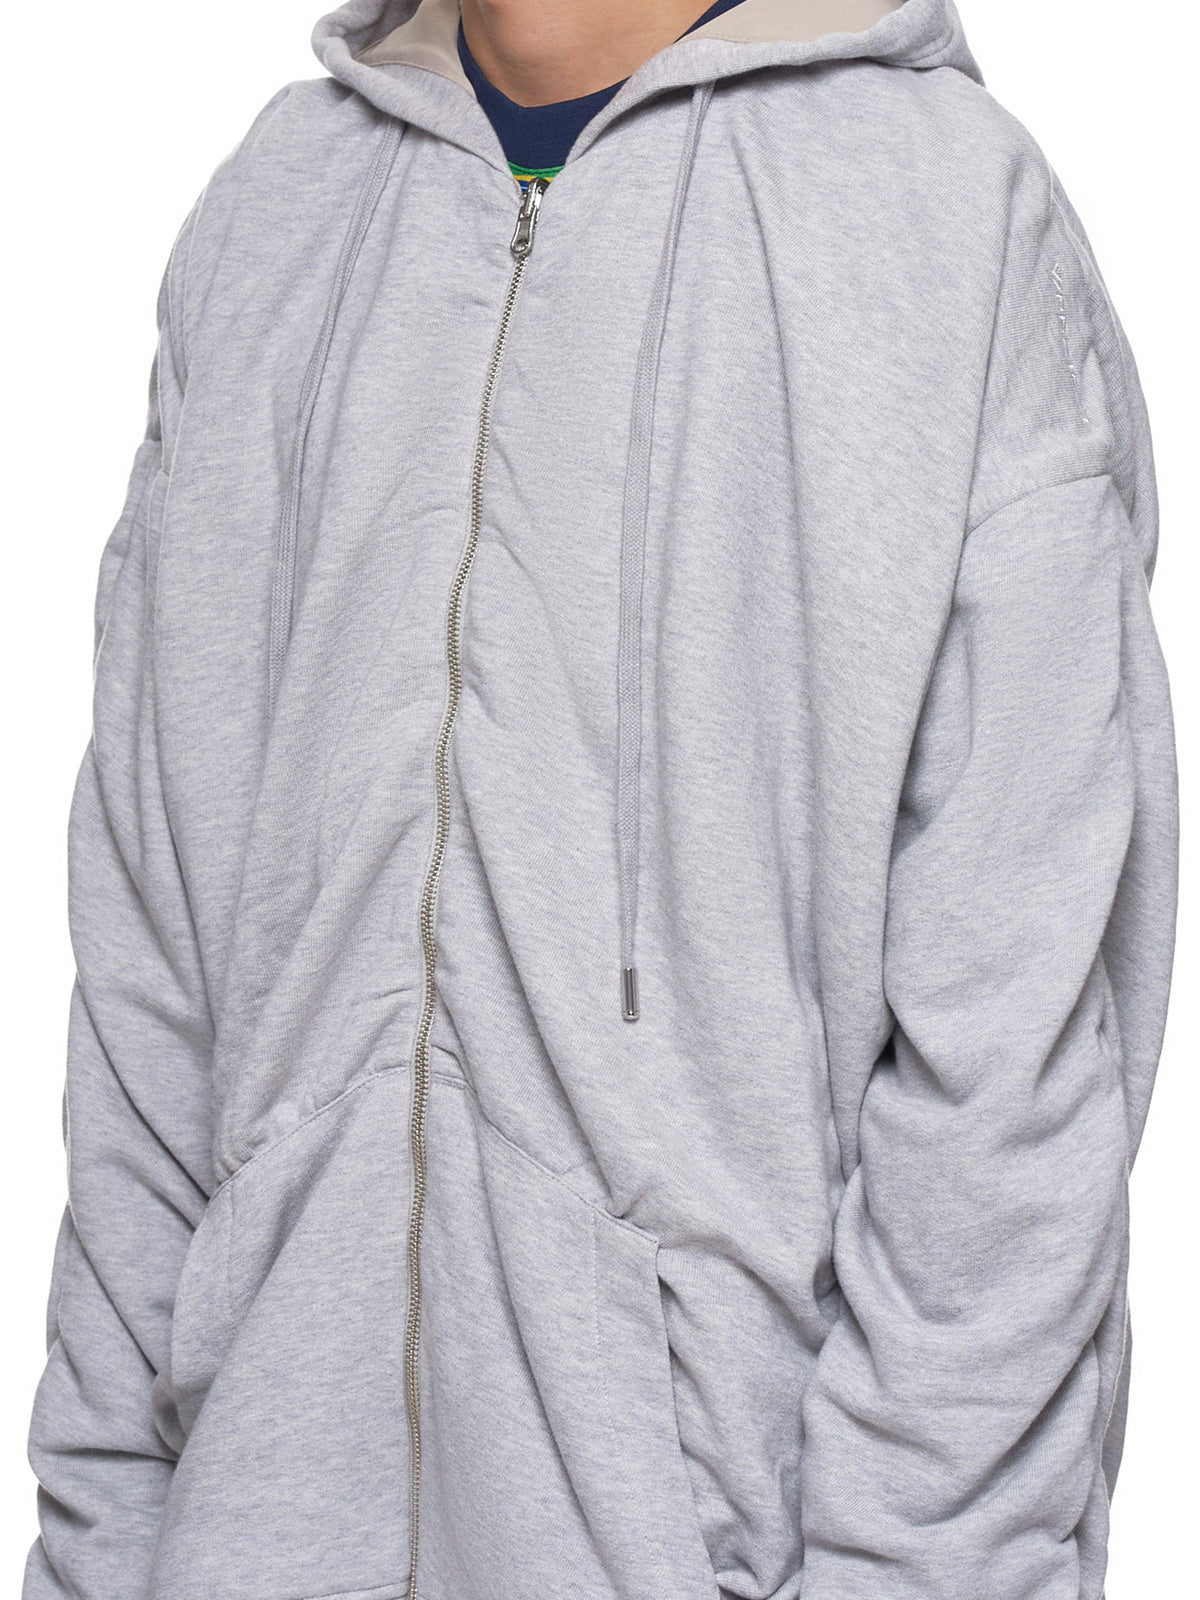 Reversible Hoodie (SWEAT23-S16-MF26-GREY-CHINE)